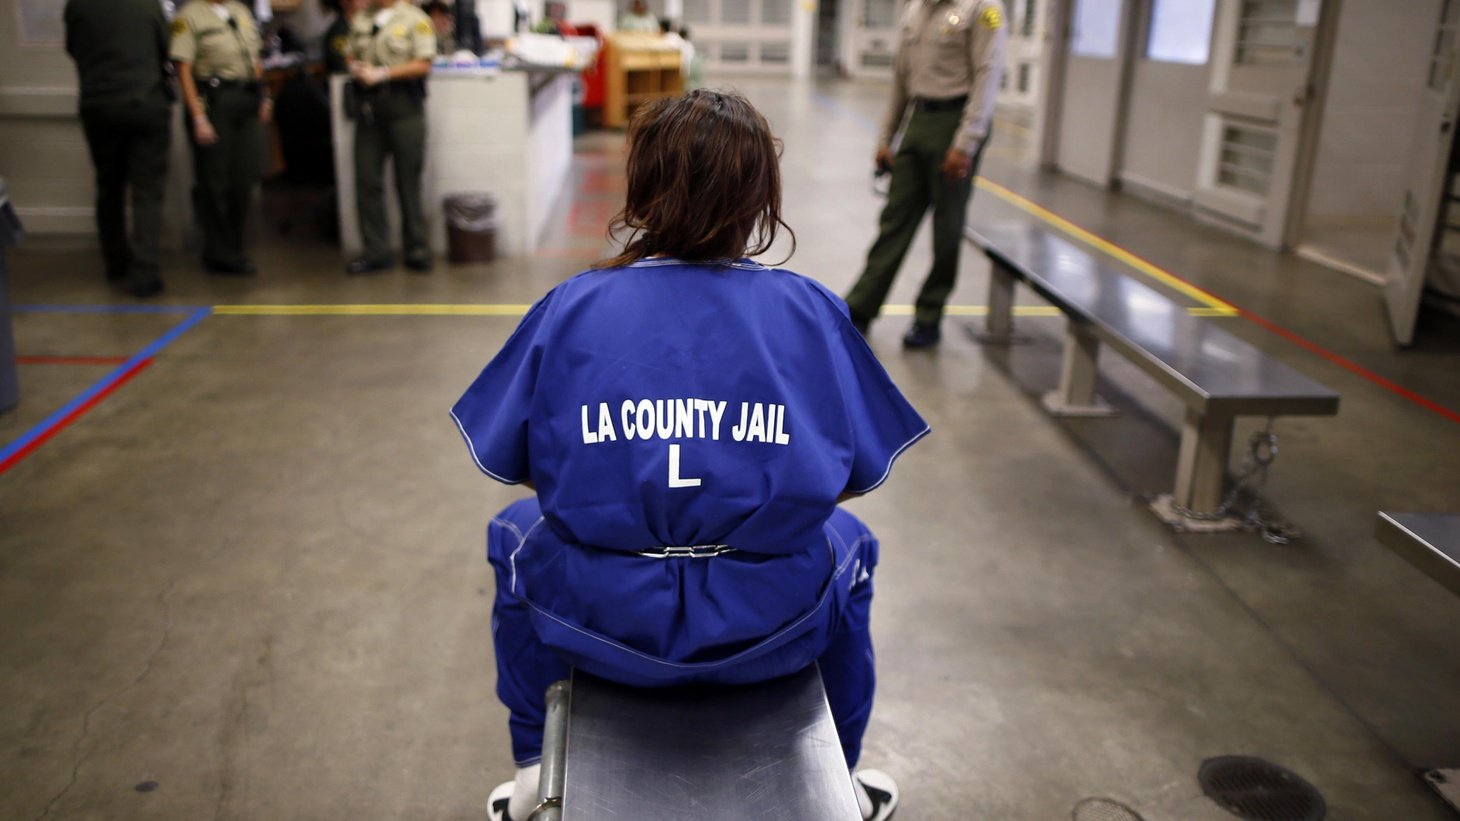 LA County votes for new jails, abuse at the US-Mexico border, Nancy Silverton talks food, Bernie Tiede is released from prison, and William Onyeabor's legacy.